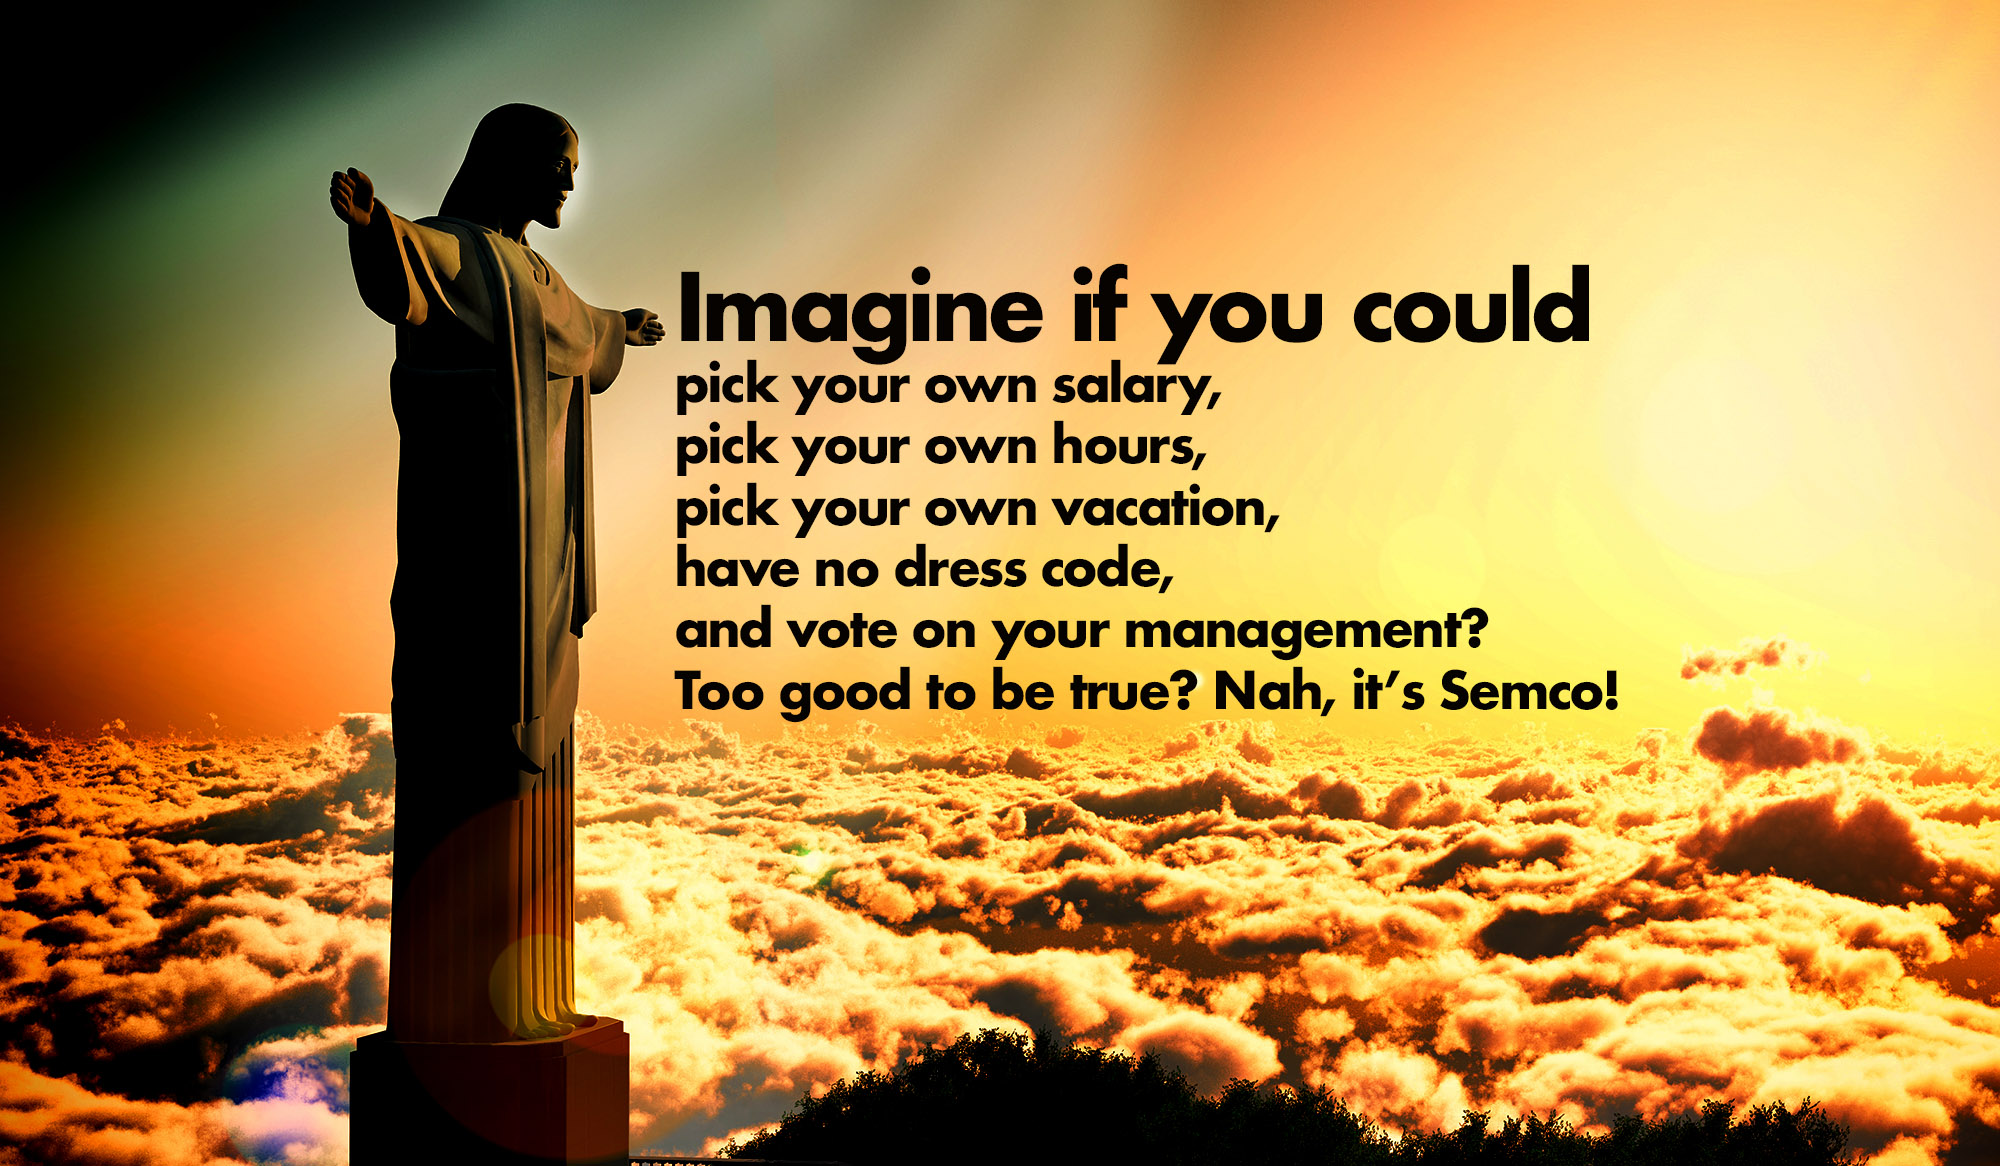 Imagine if you could